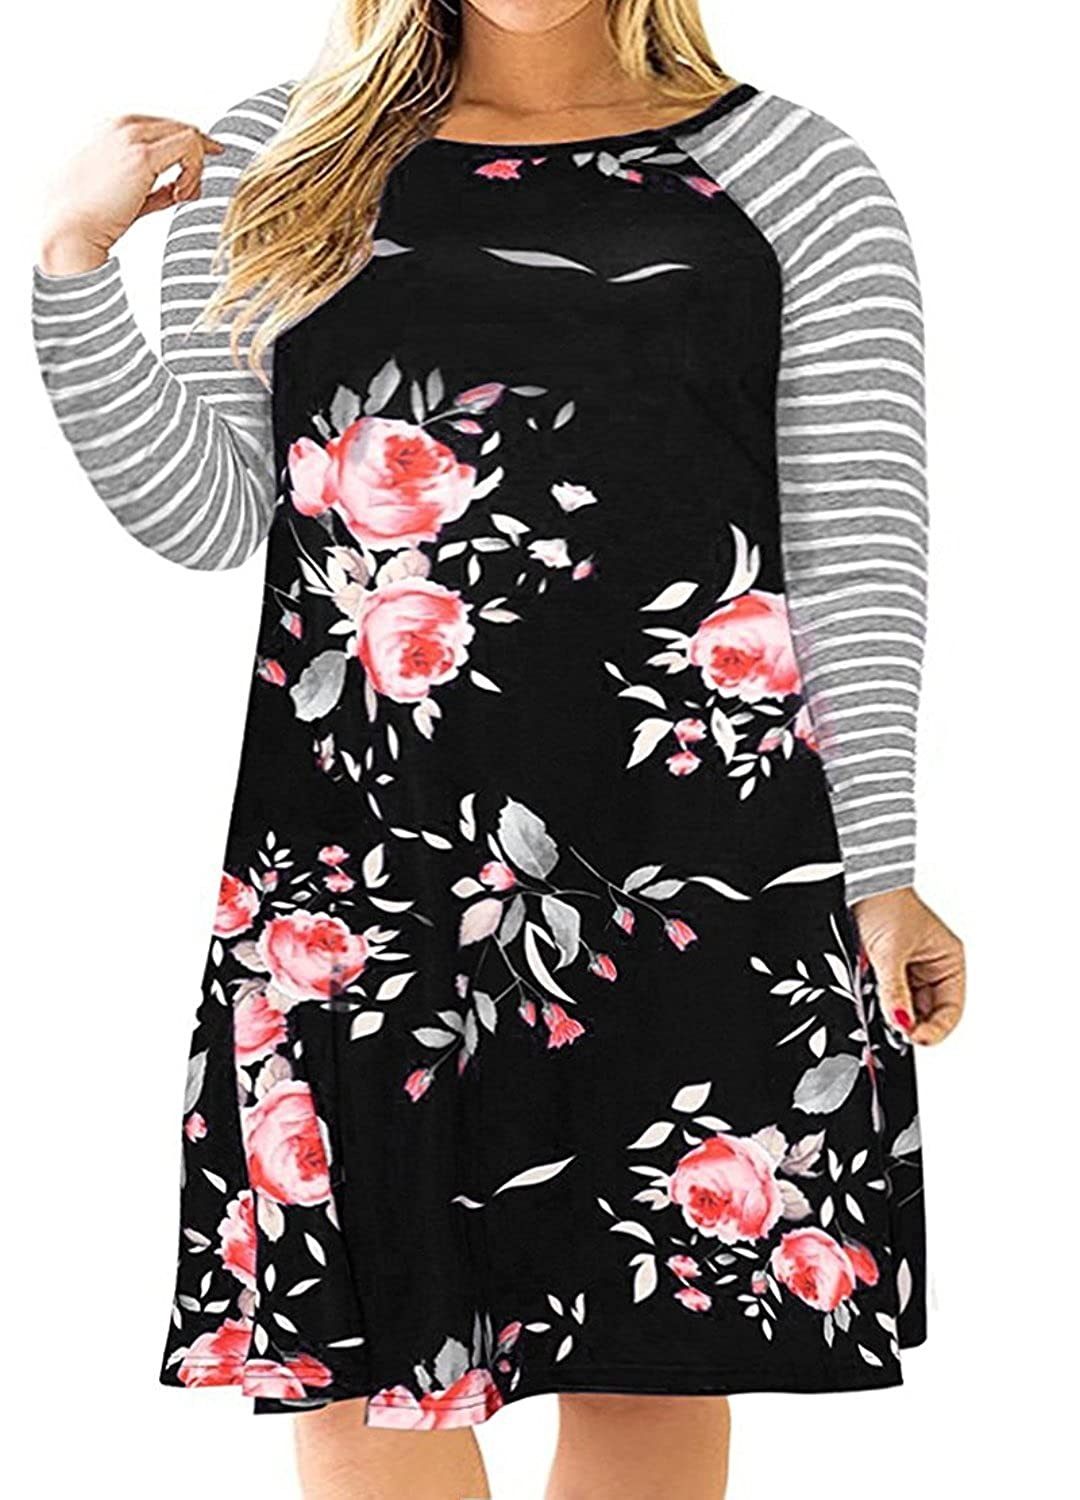 4f7a7ea9 Elastic and Stretchable Soft and Comfortable ,Floral Print Dress, Plus Size  Long Raglan Striped Sleeve Floral Dresses,you Will Love It